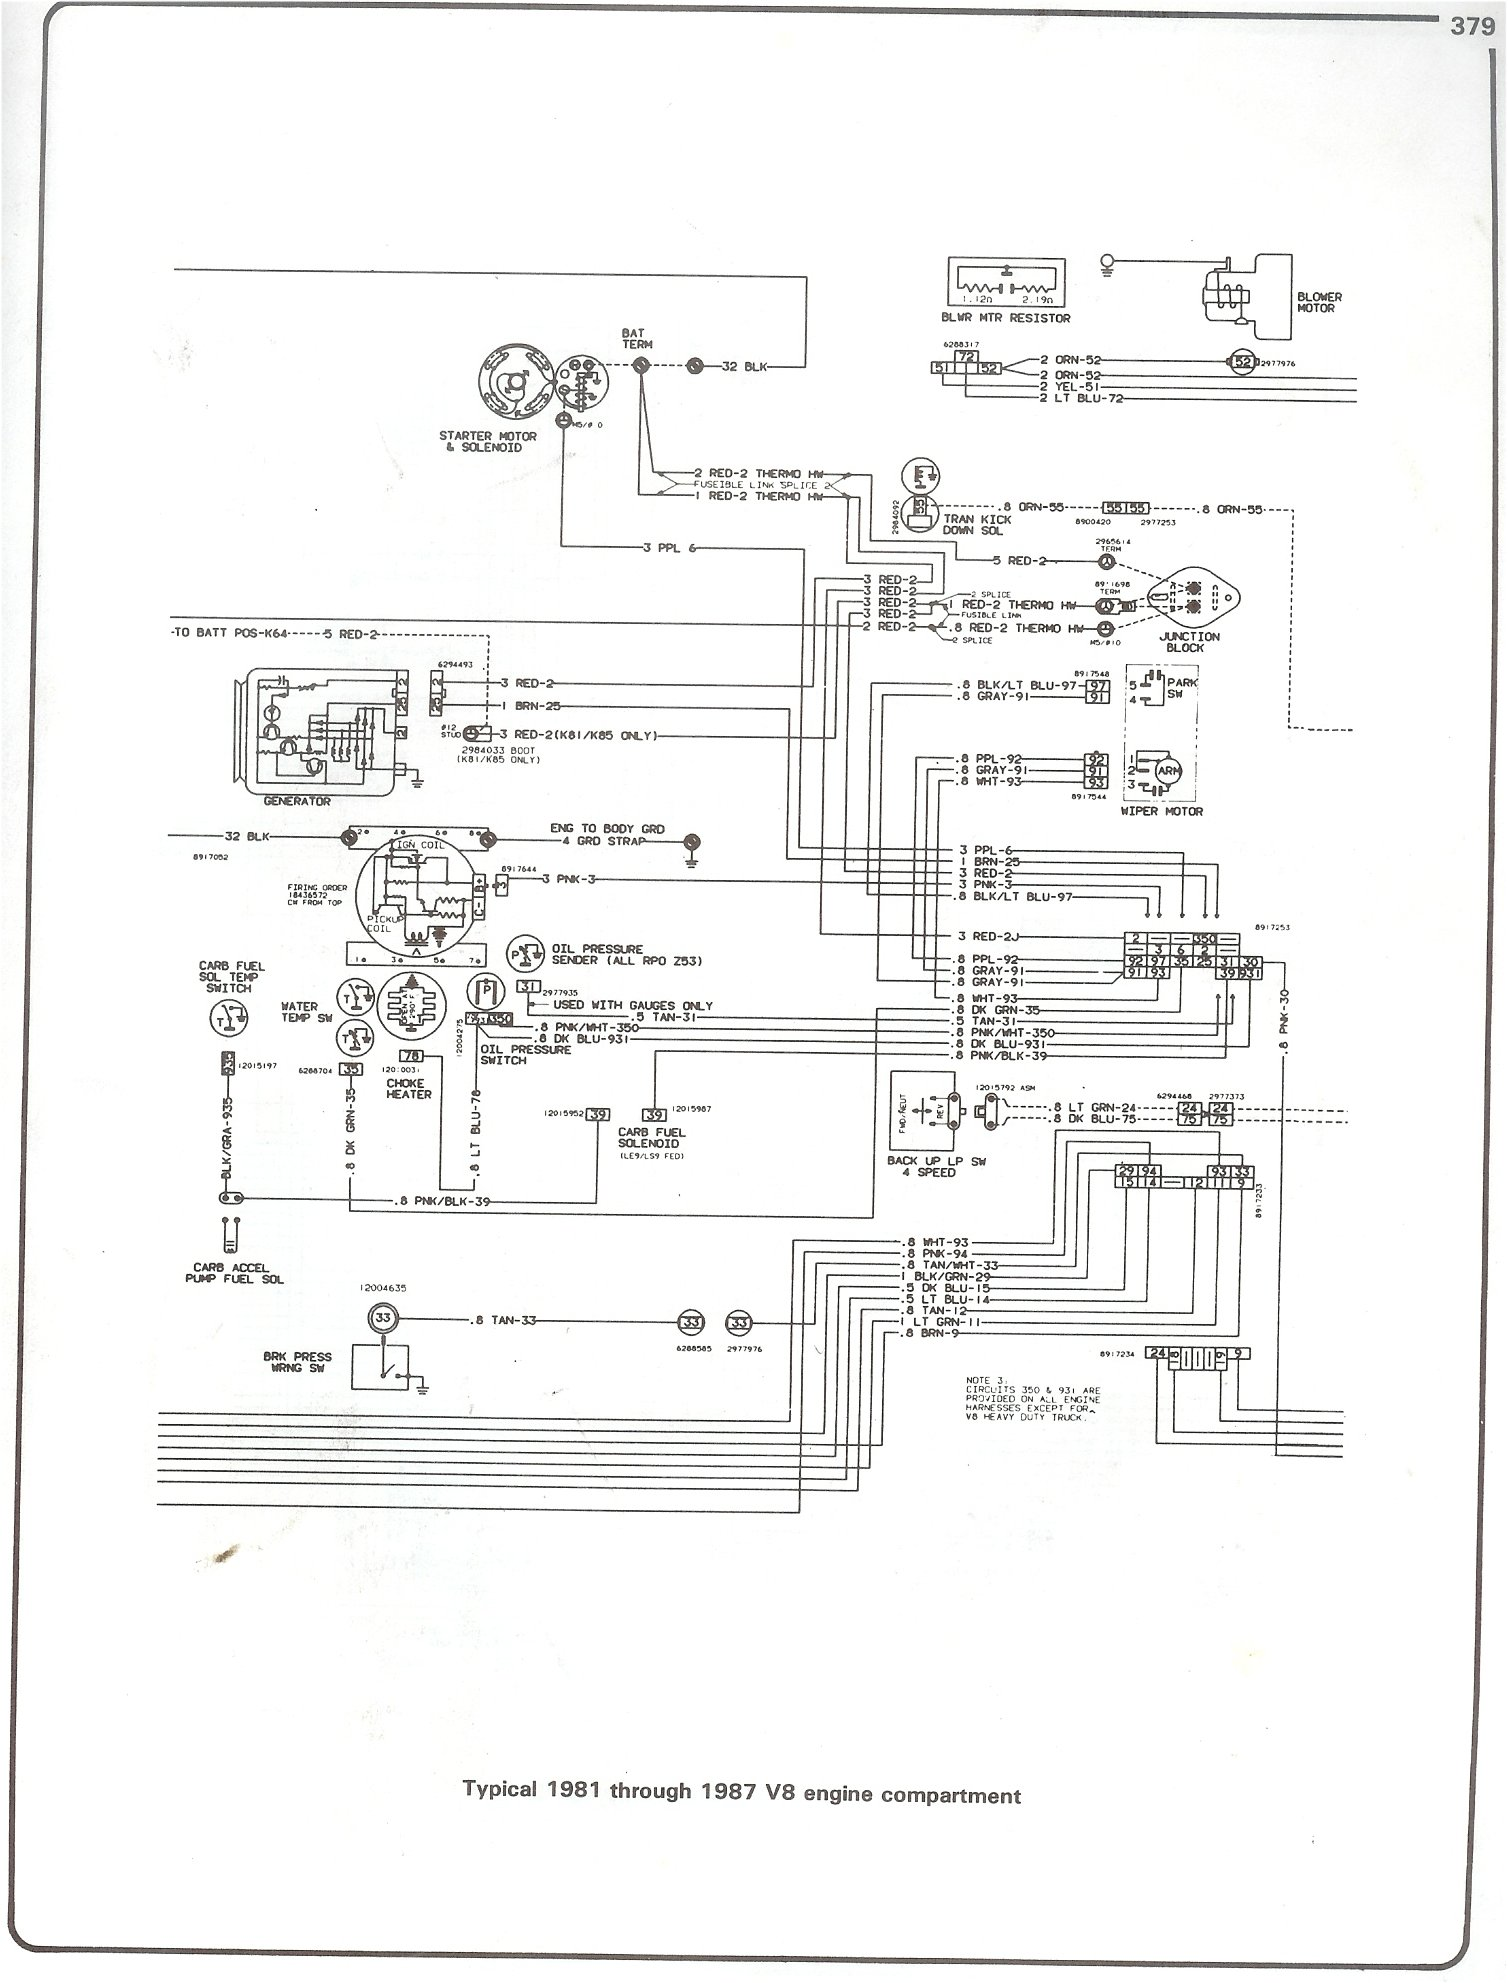 1979 Chevy Pickup Wiring Diagram Wiring Diagram Schemes 86 Chevy Truck Fuse  Box 1979 Chevy Fuse Box